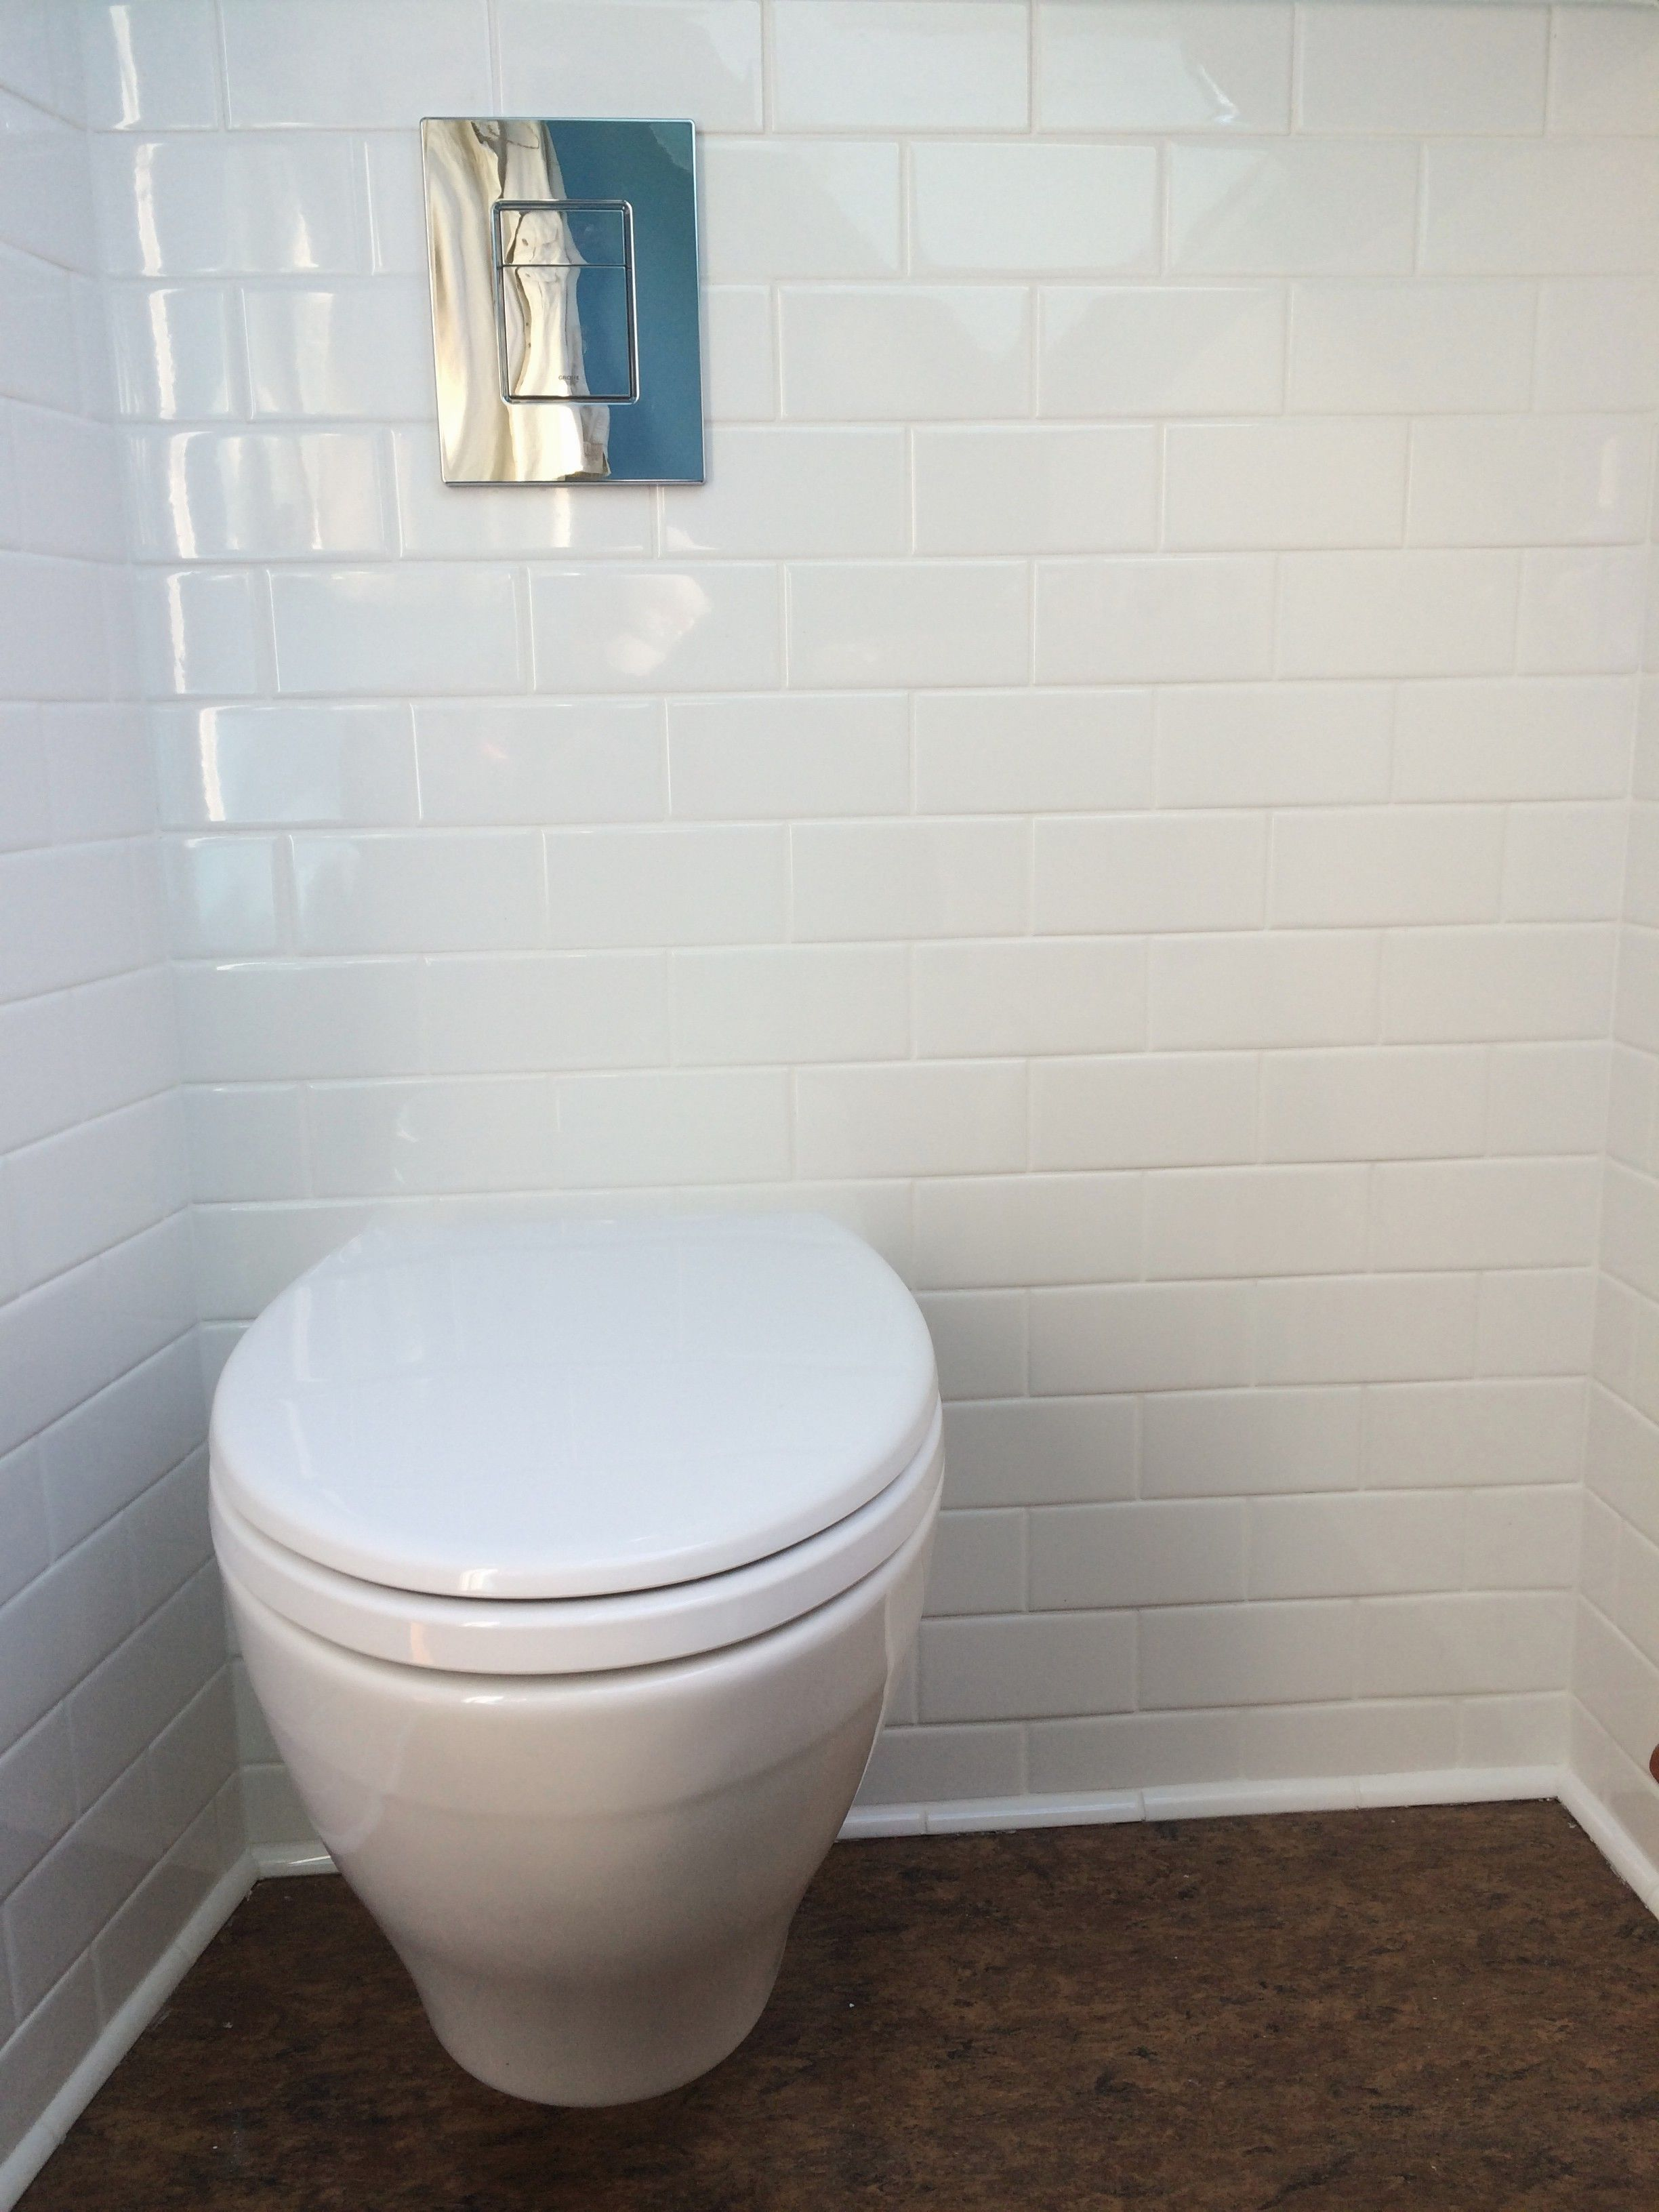 Wall mounted toto toilet with a grohe concealed water tank for Water wall plumbing